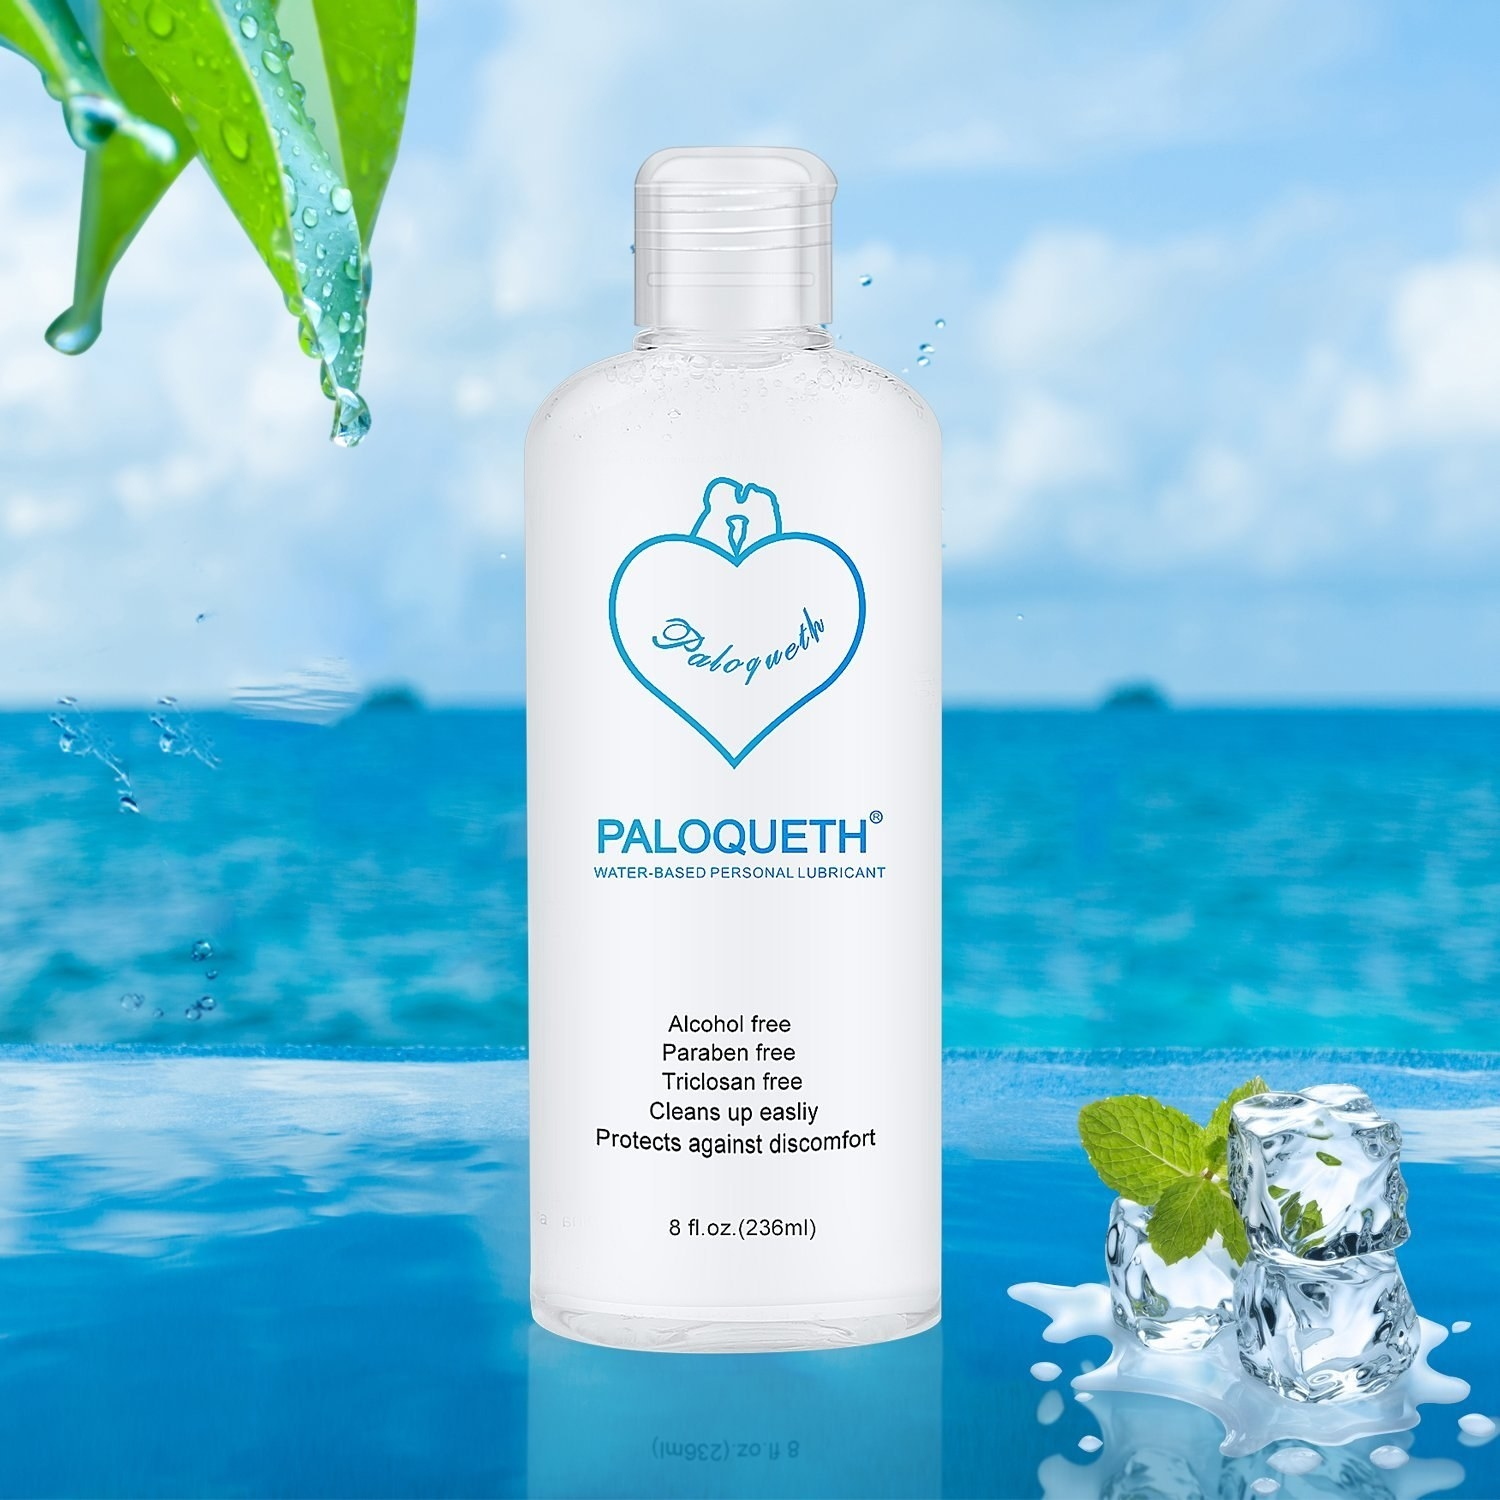 """This is water-based, so sex toys are free game. Promising review: """"Exactly what I was looking for in a personal lubricant. It has a good consistency, lasts long, and best of all the clean up is a breeze. With this stuff, all you basically need to do is wipe it up. Even without water, using a dry tissue or towel there is little to no residue left over on your skin."""" —Michael Carrillo Price: $9.99"""